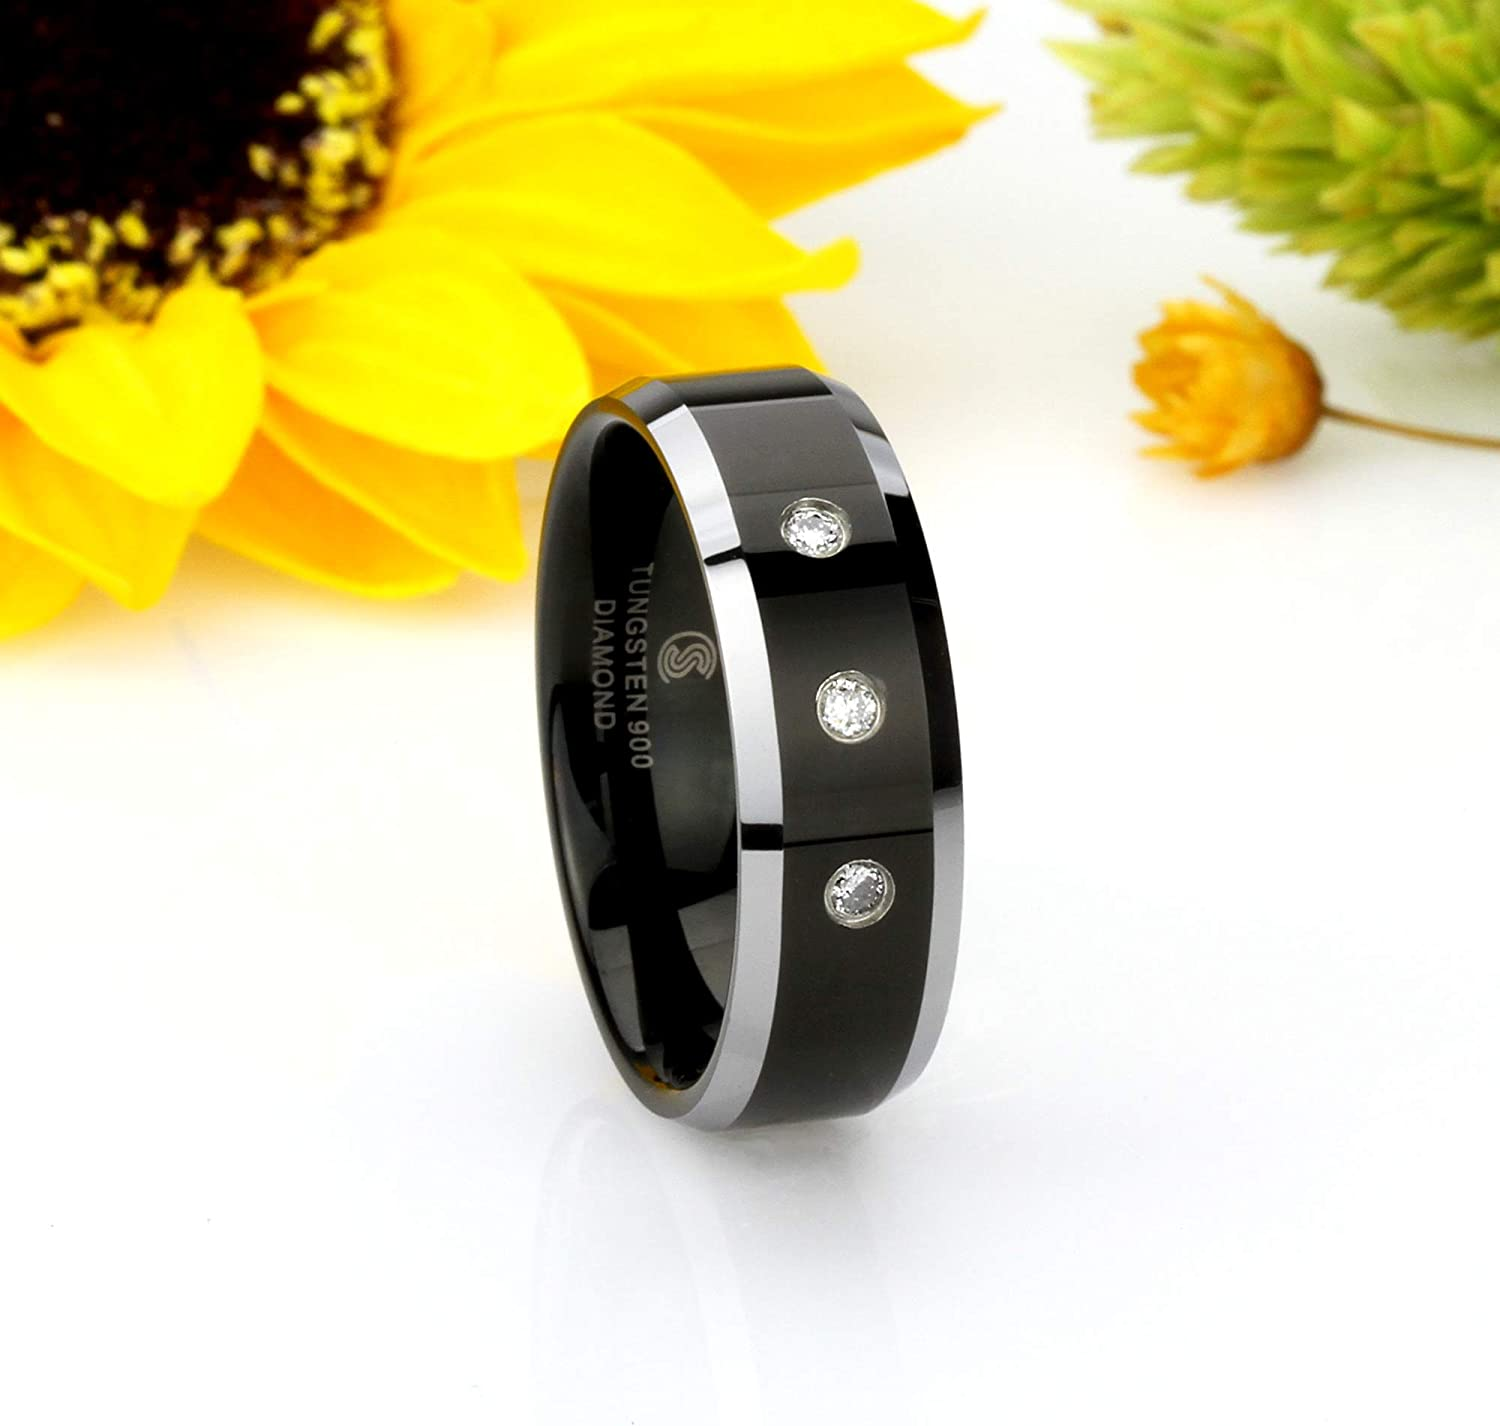 Double Accent 8MM Comfort Fit Tungsten Carbide Wedding Band 0.17 cttw 3 Diamond Beveled Edges Black Ring 8 to 14